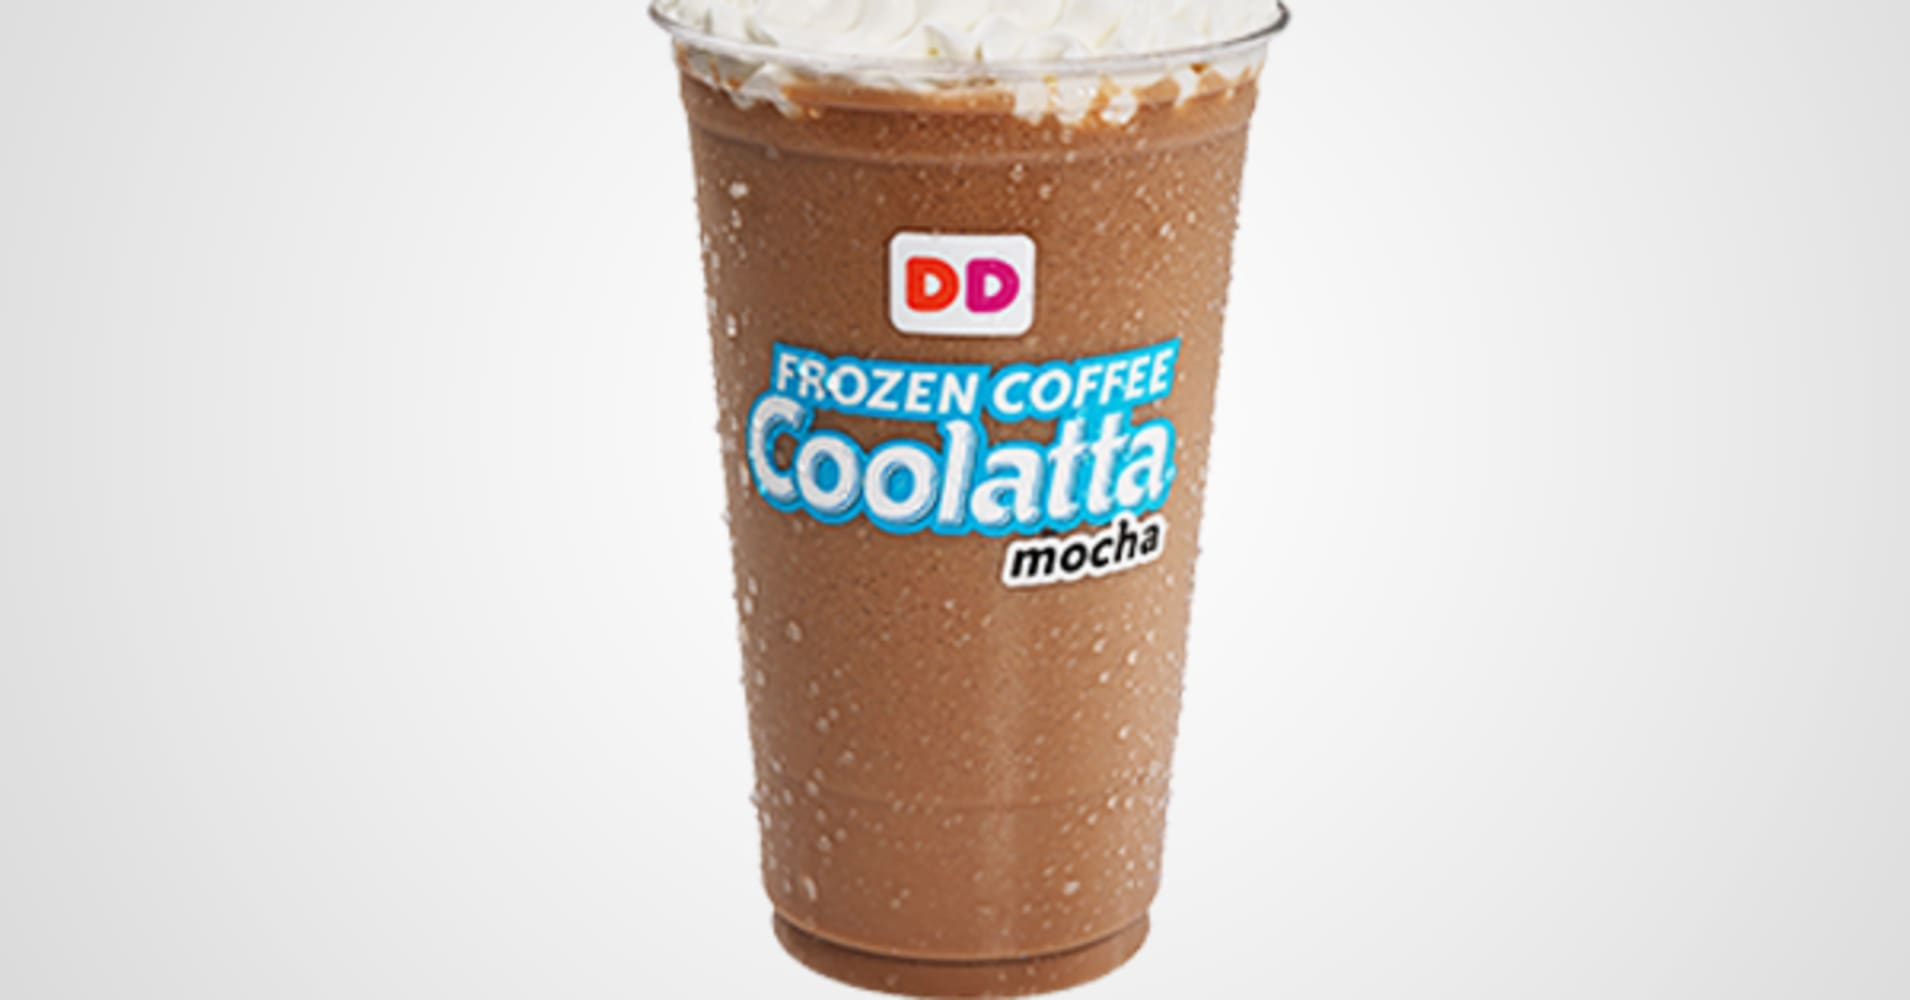 Dunkin' Donuts is ditching its Coffee Coolatta and people are ...